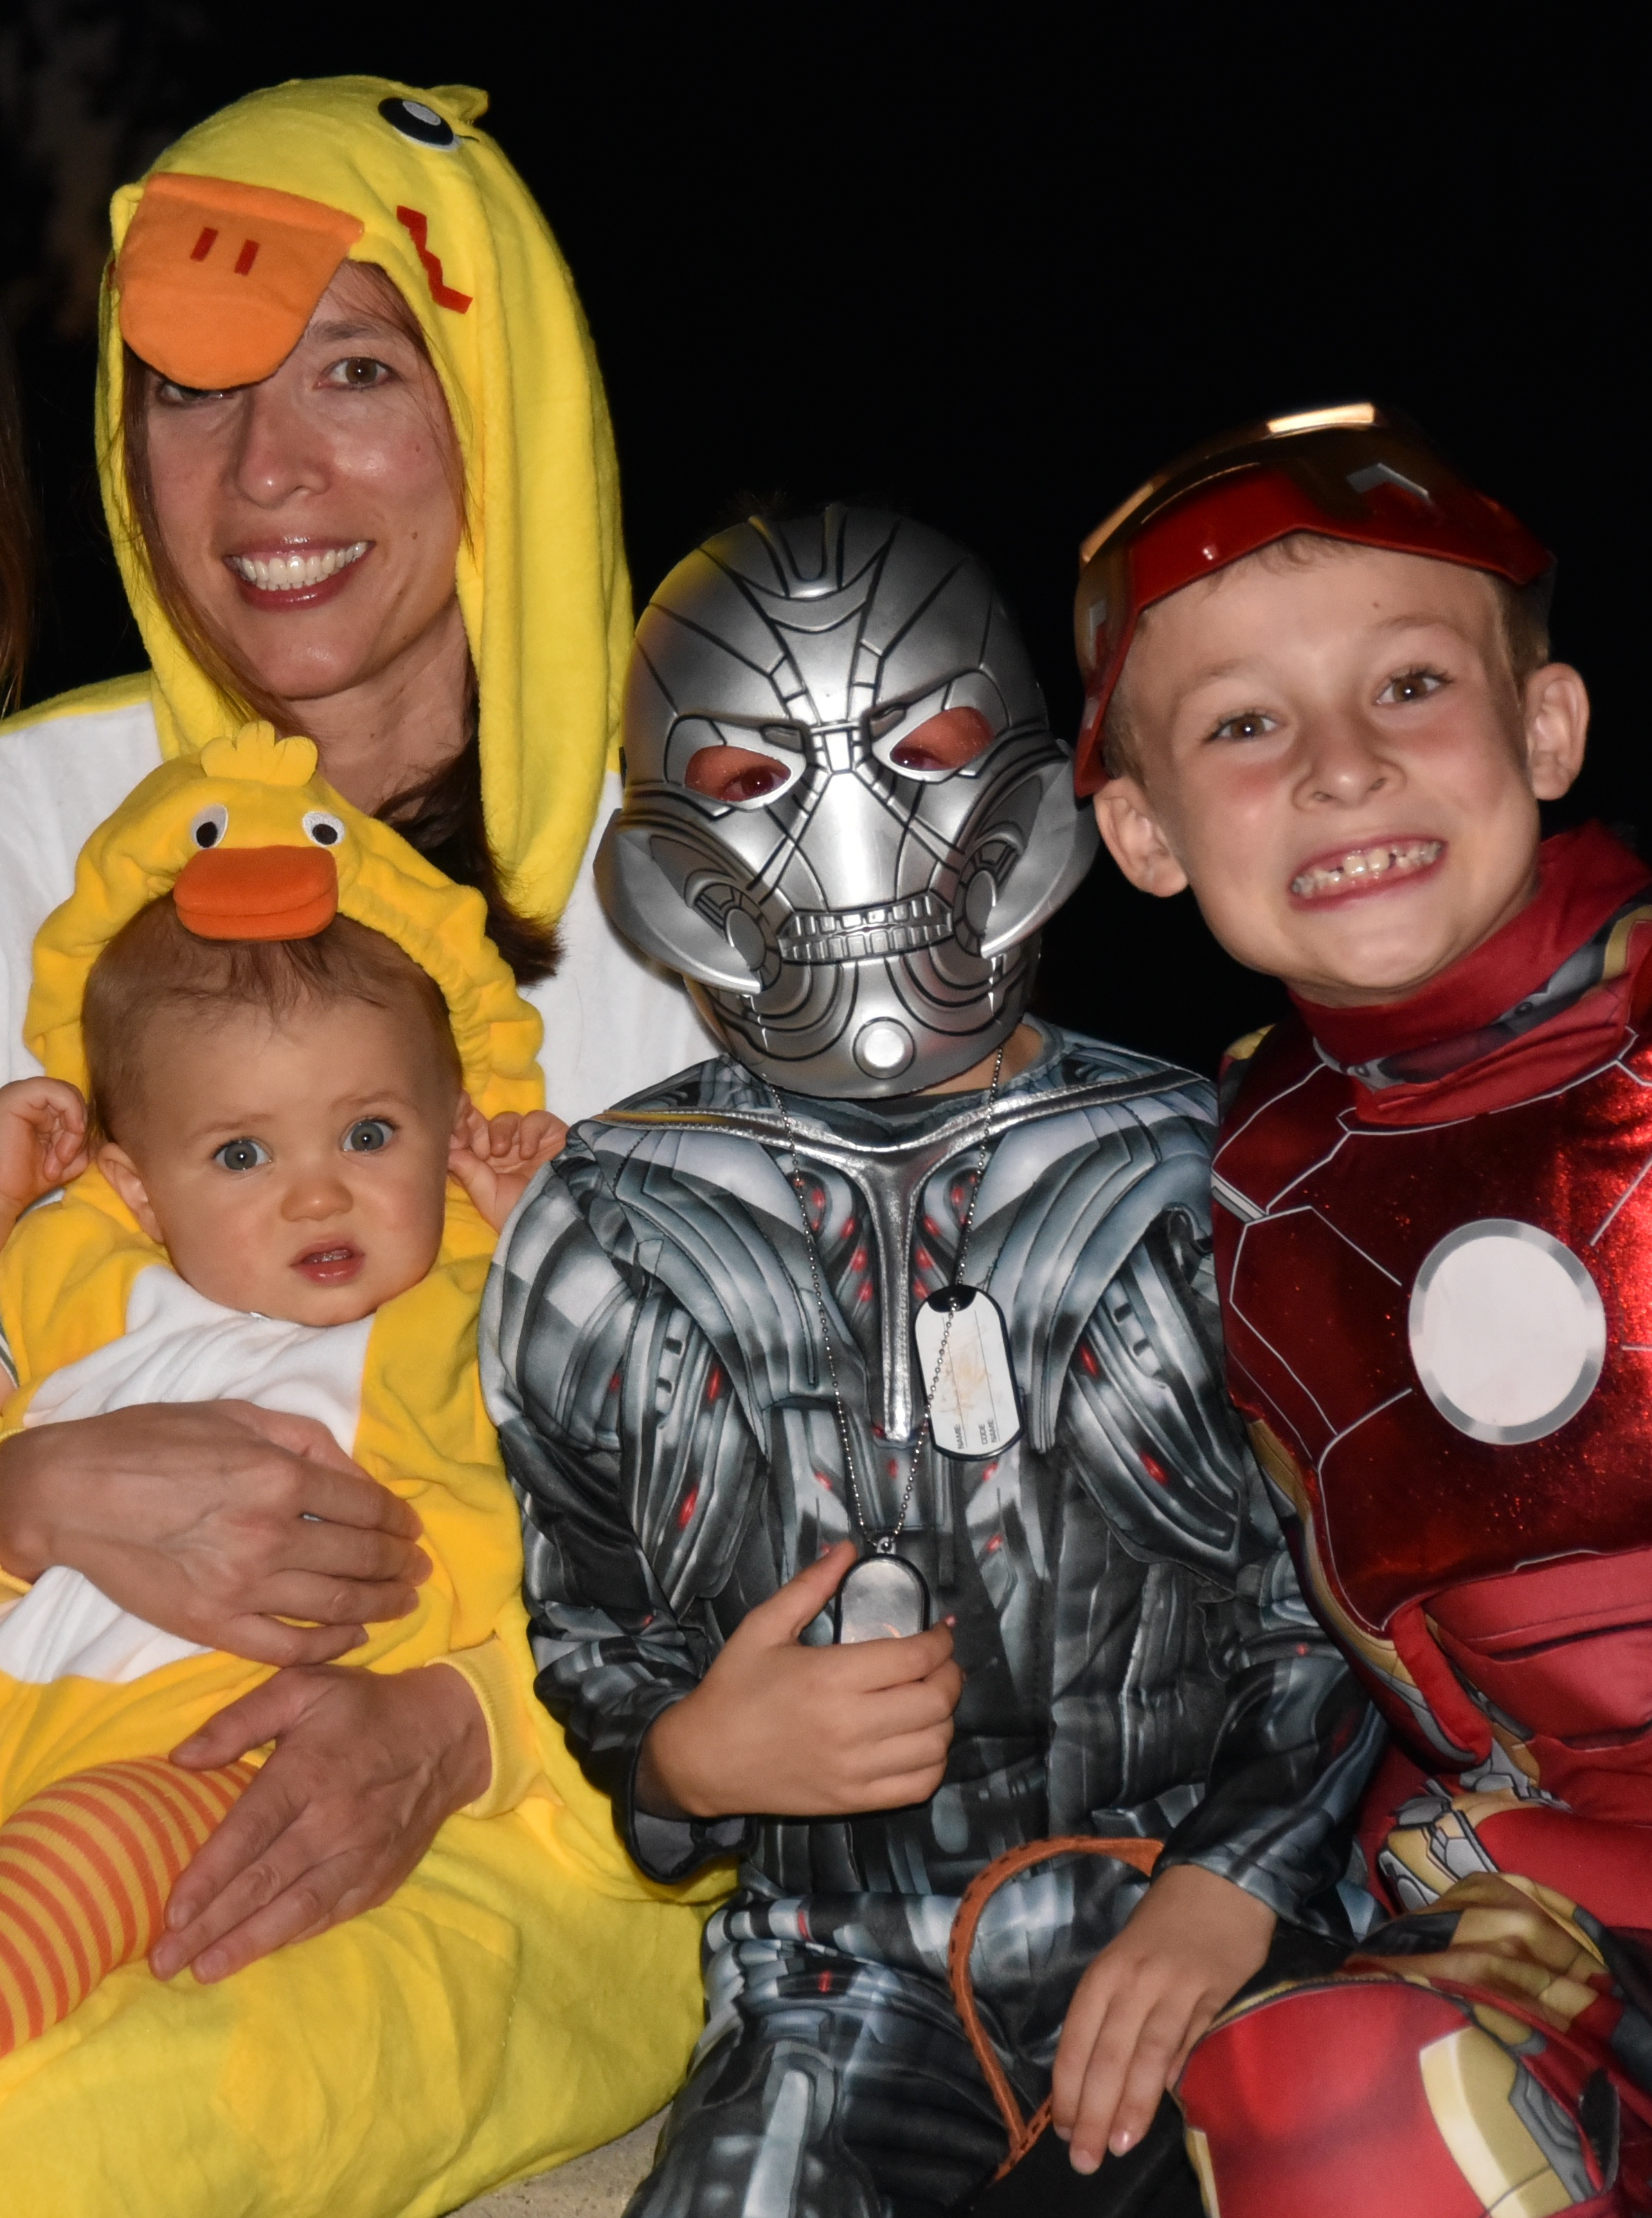 Dr. Kari and her three sons out for trick-or-treating!